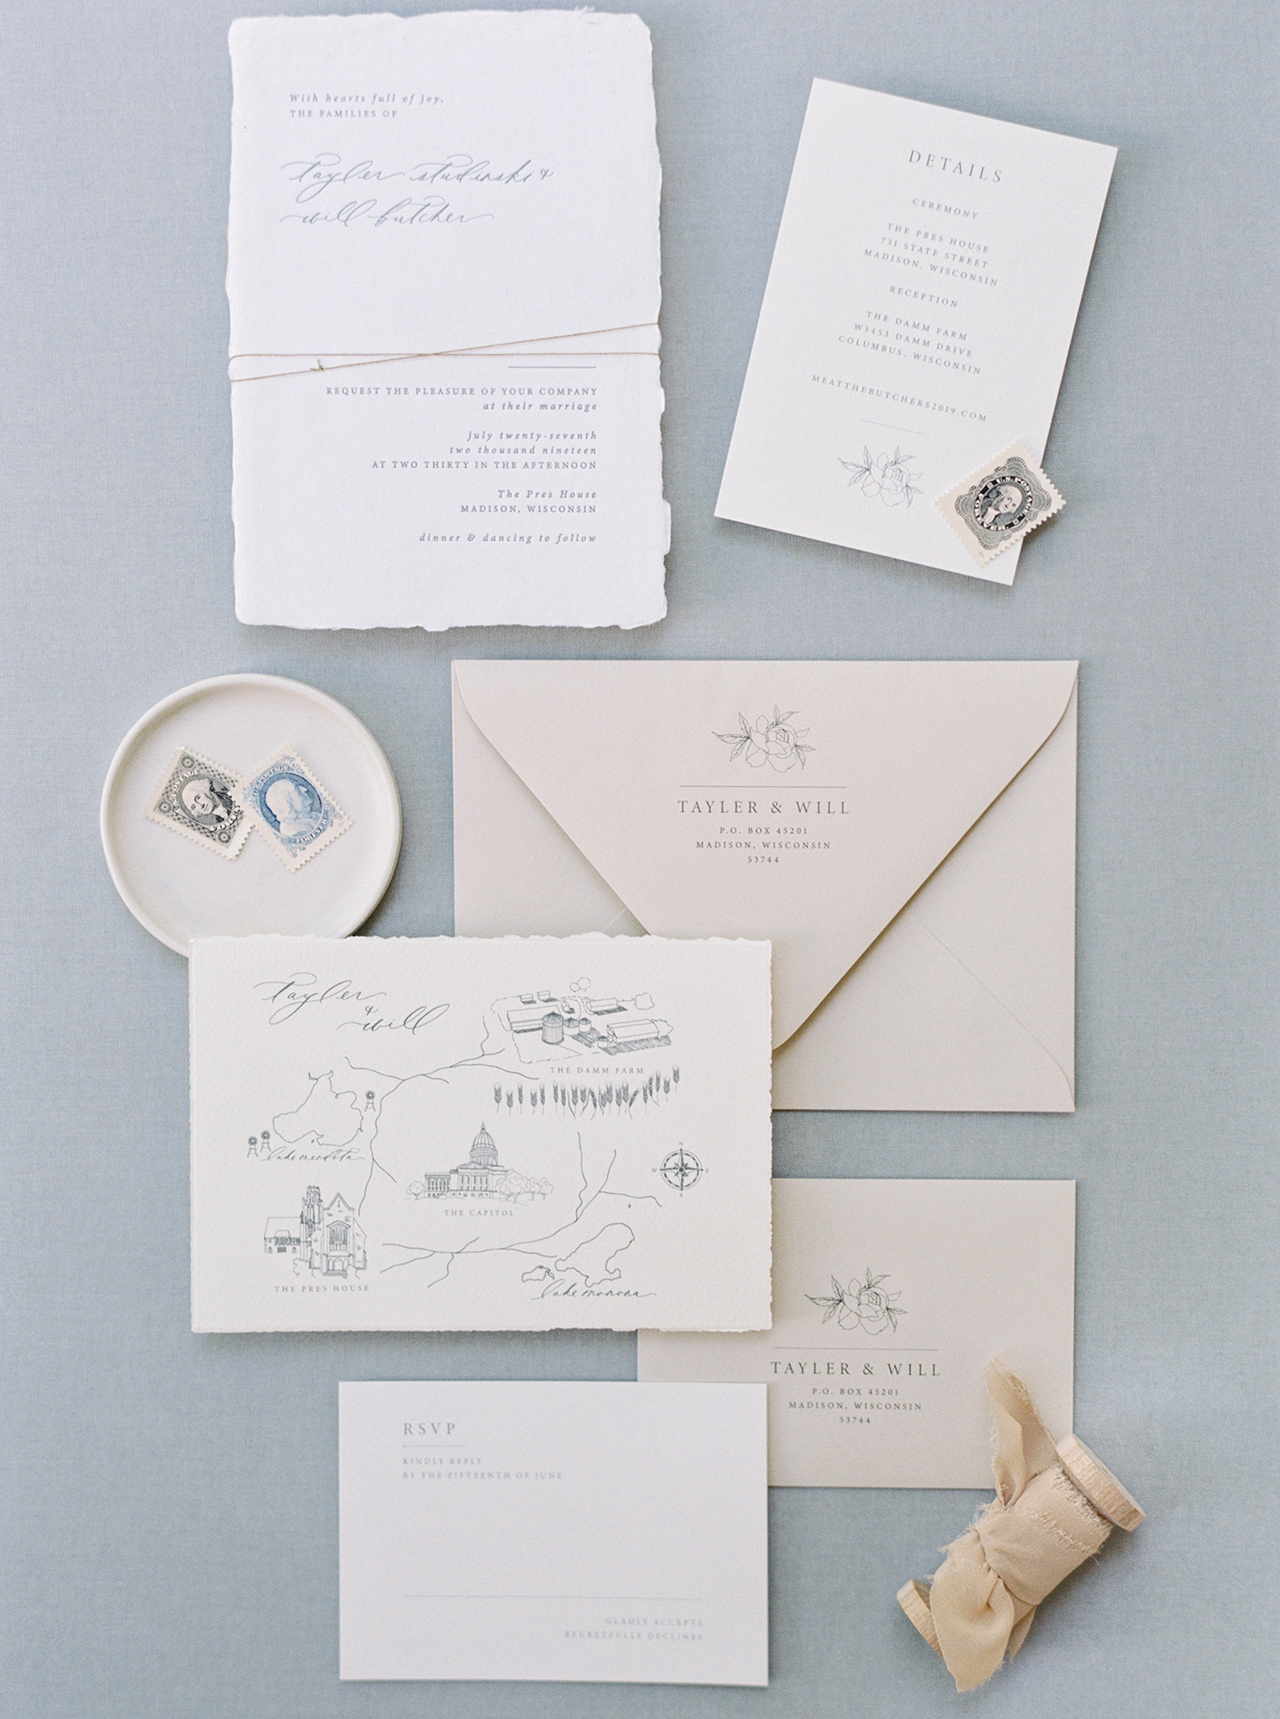 Elegant Invitation Suite handmade paper and natural-toned envelopes